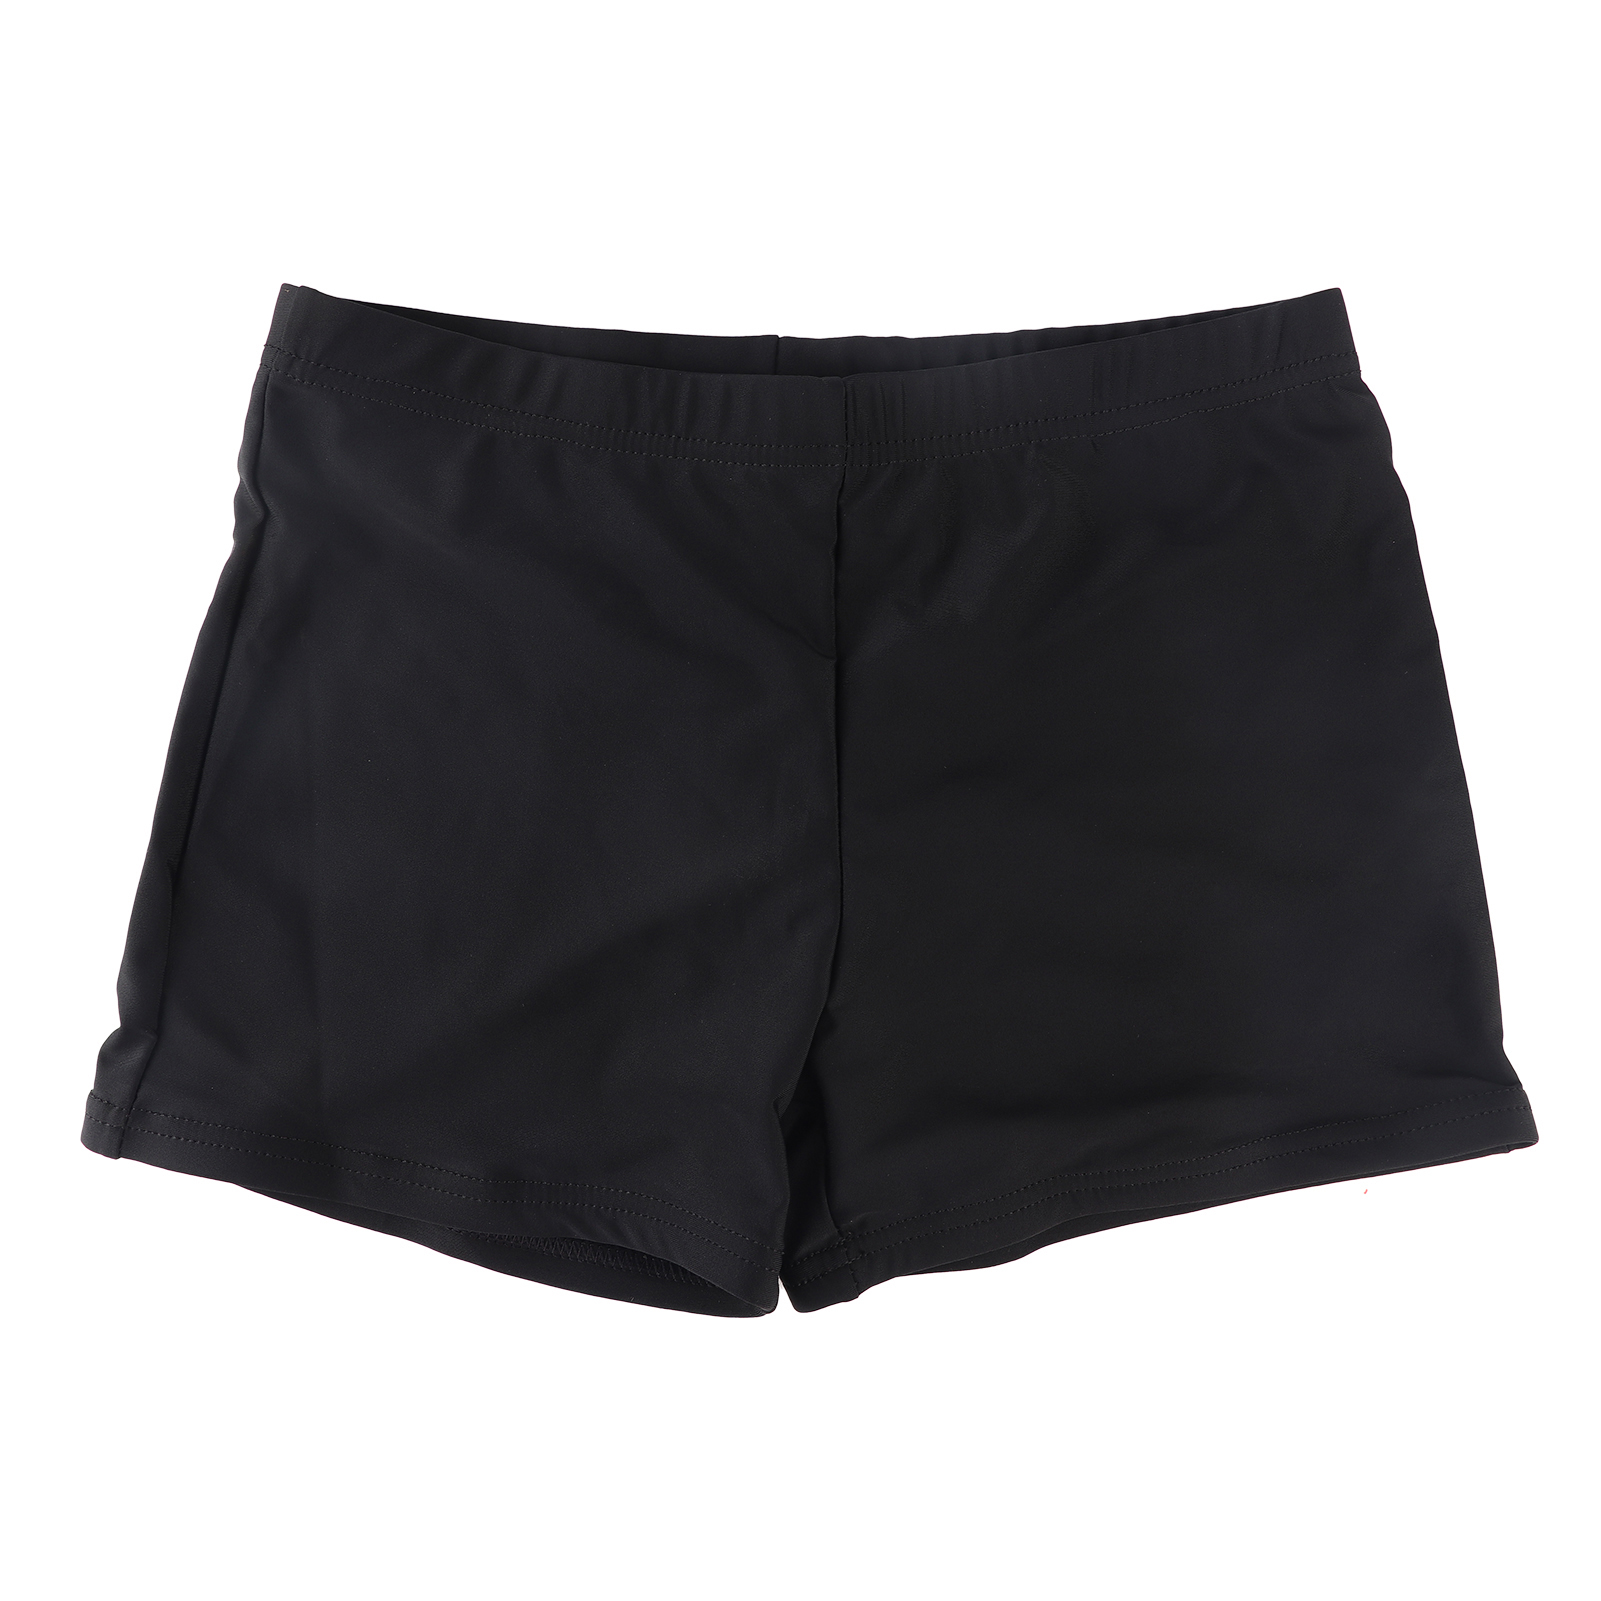 Keep-Diving-Schwimmhose-herren-badehose-Shorts-Surfen-Beach-Beachhose-s-3xl